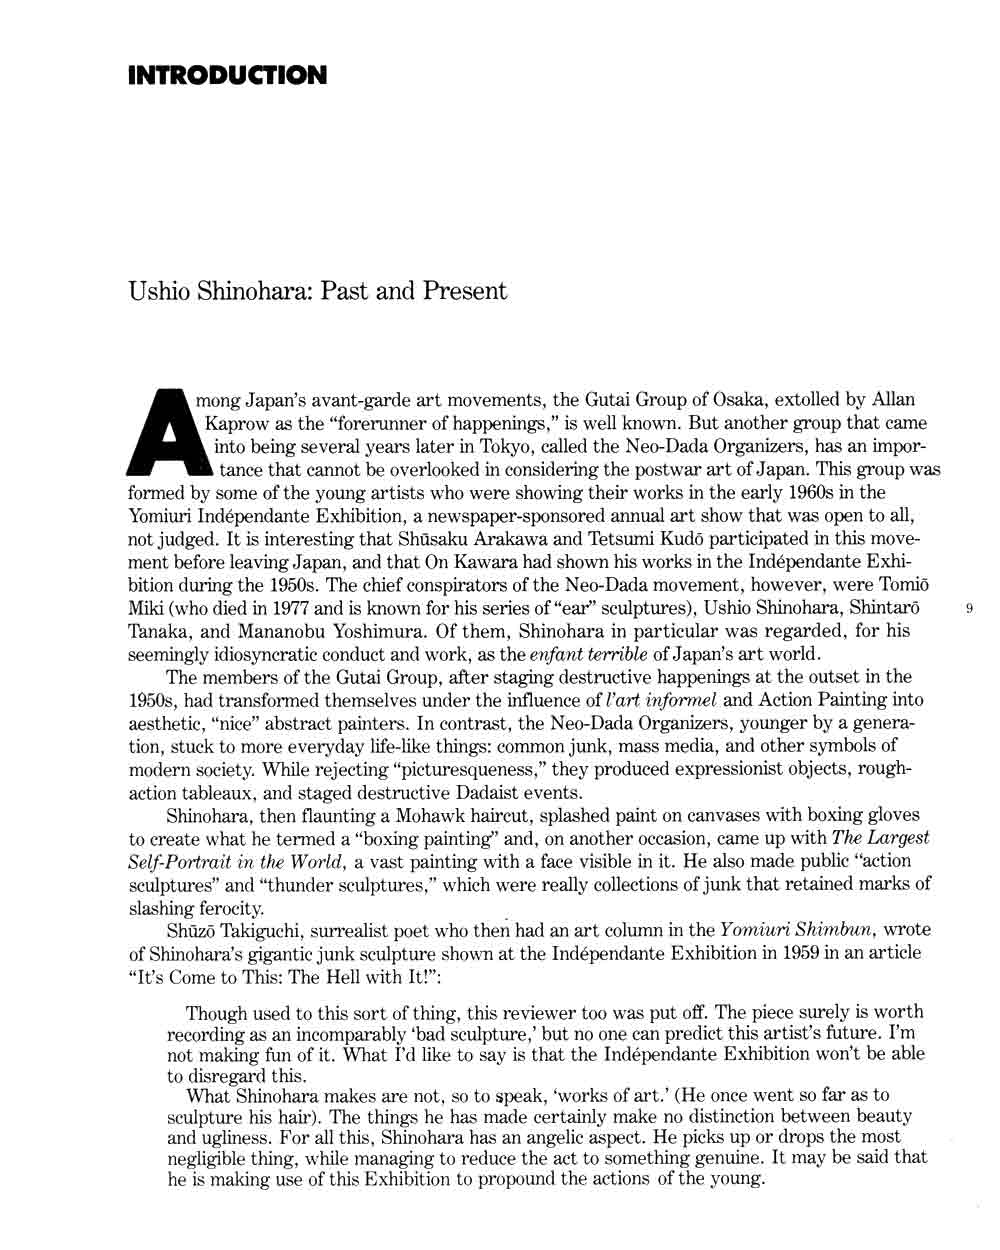 005 How To Cite An Essay Example Ushio Shinohara Past And Present Pg 1 Archaicawful In A Book Mla 8th Edition Work Format Within Apa Full